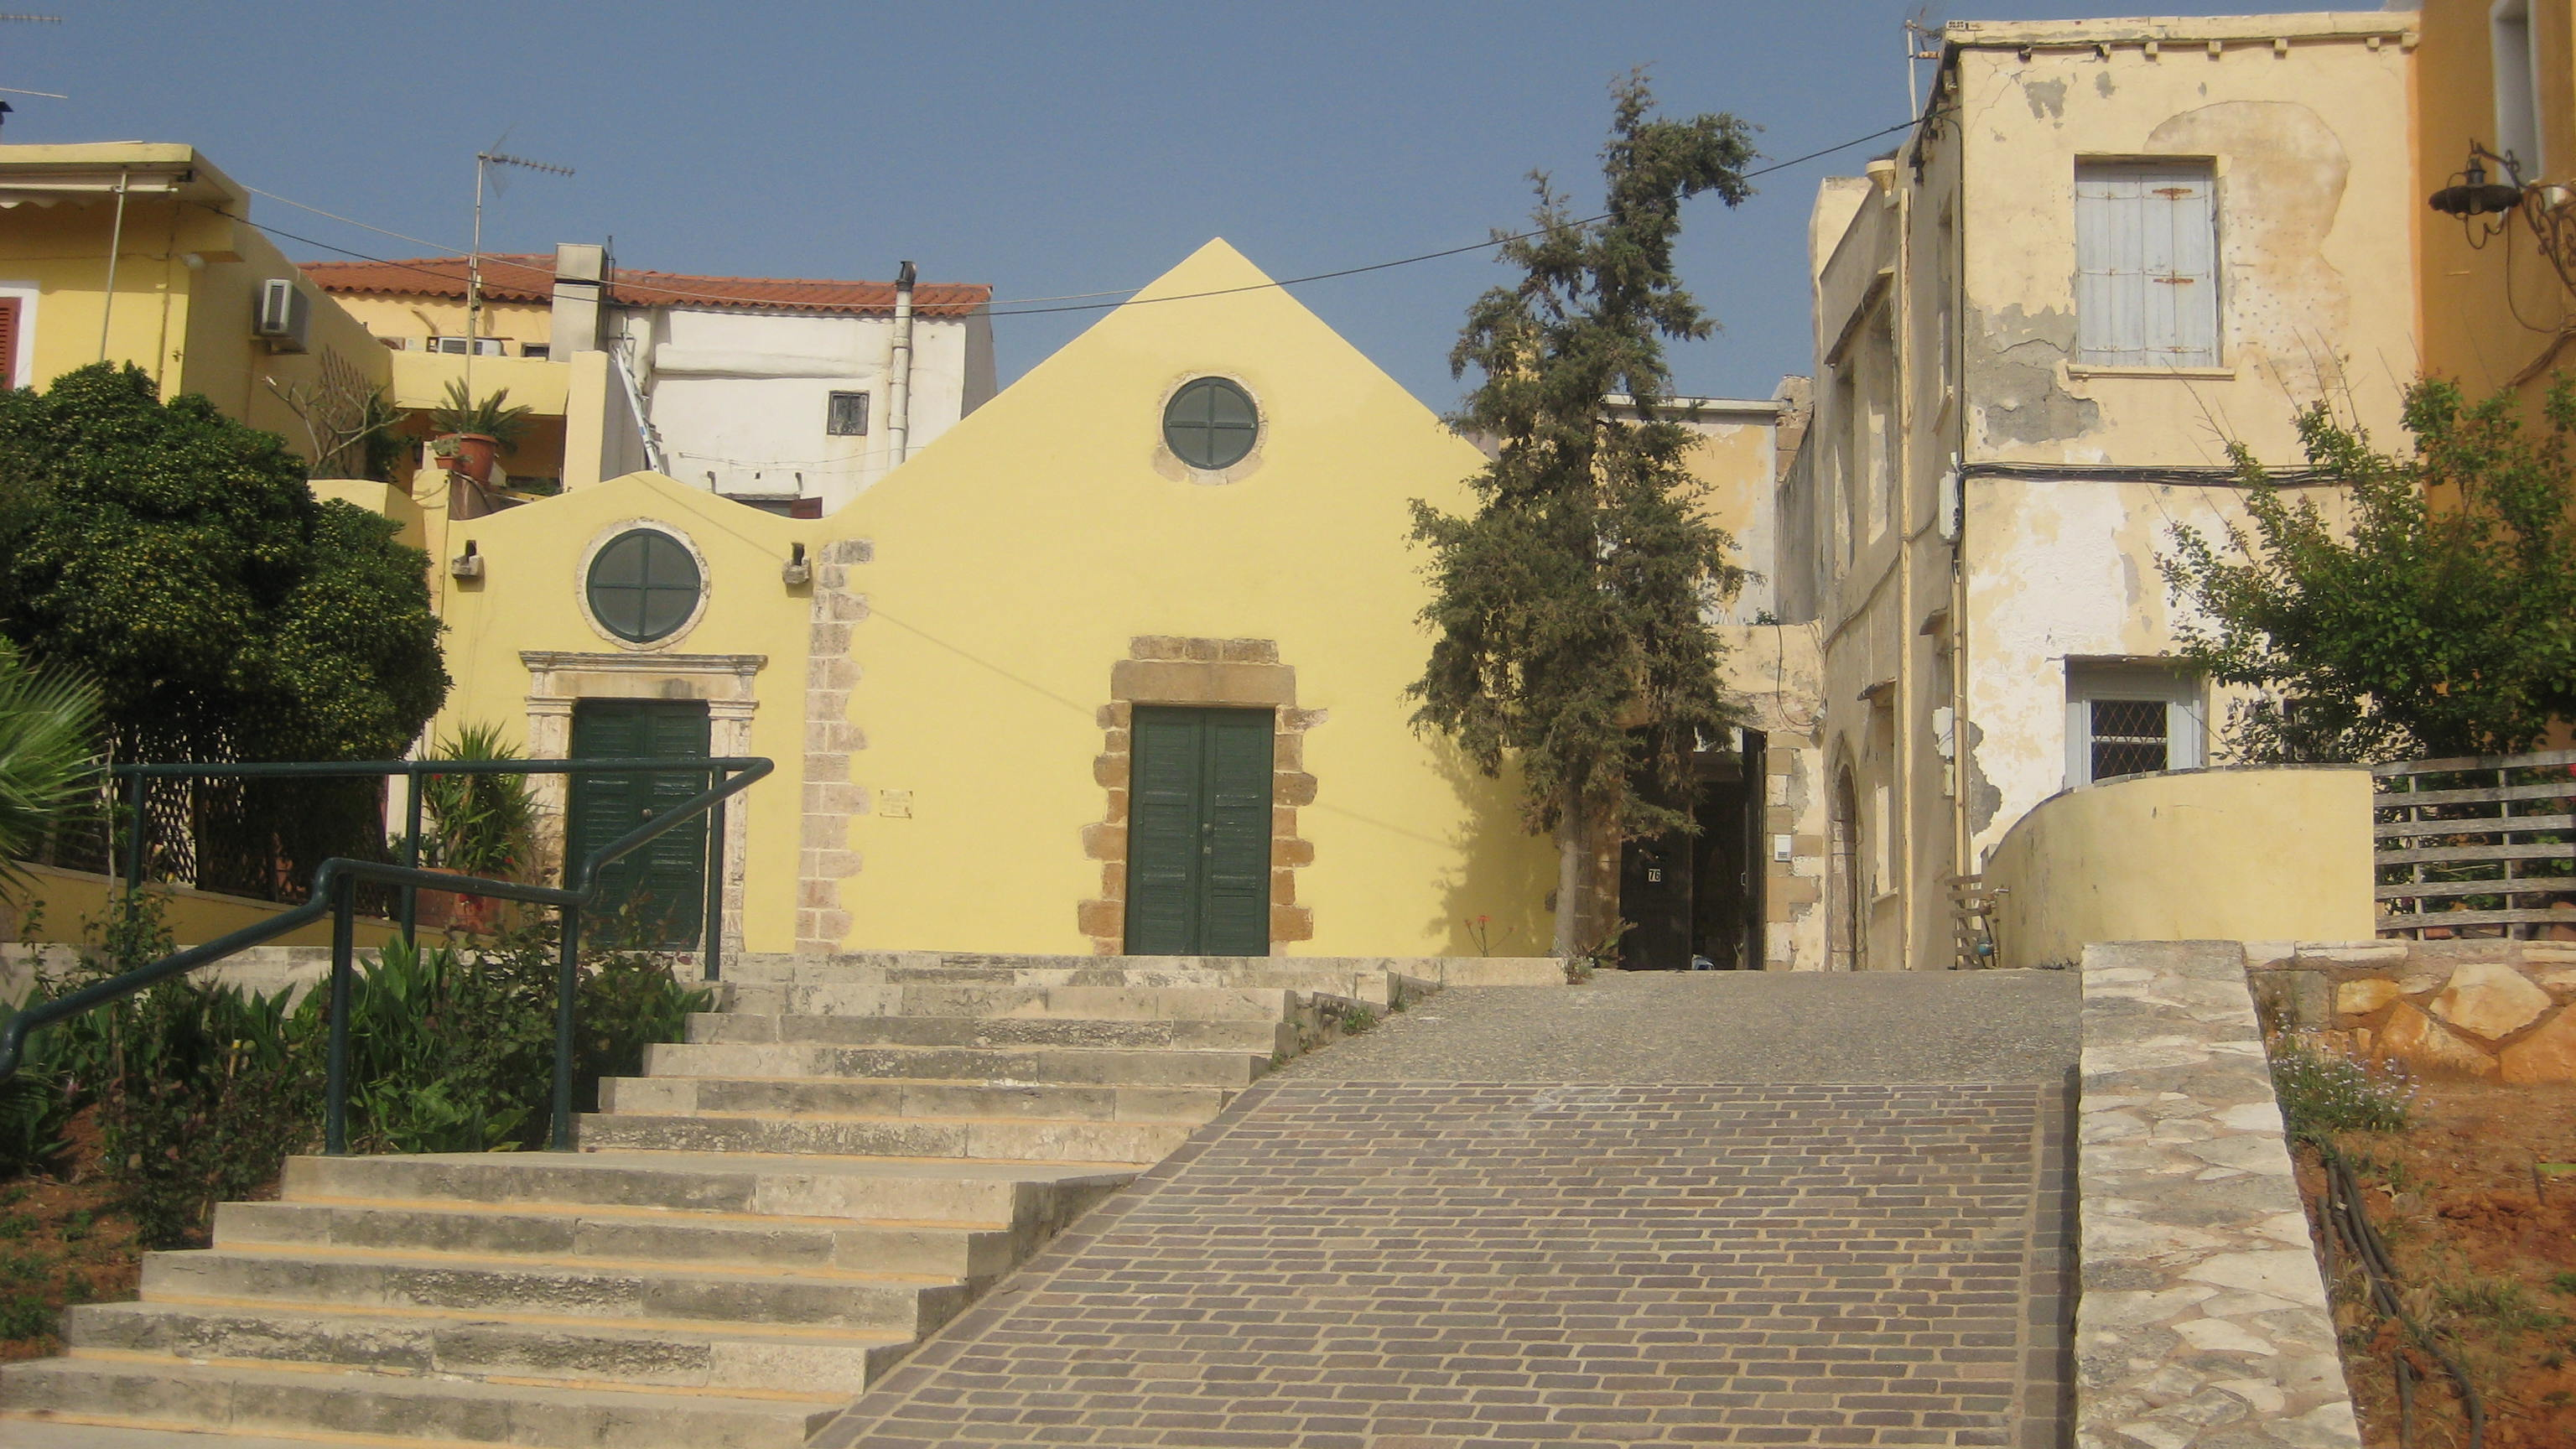 The Franciscan monastery of San Salvatore